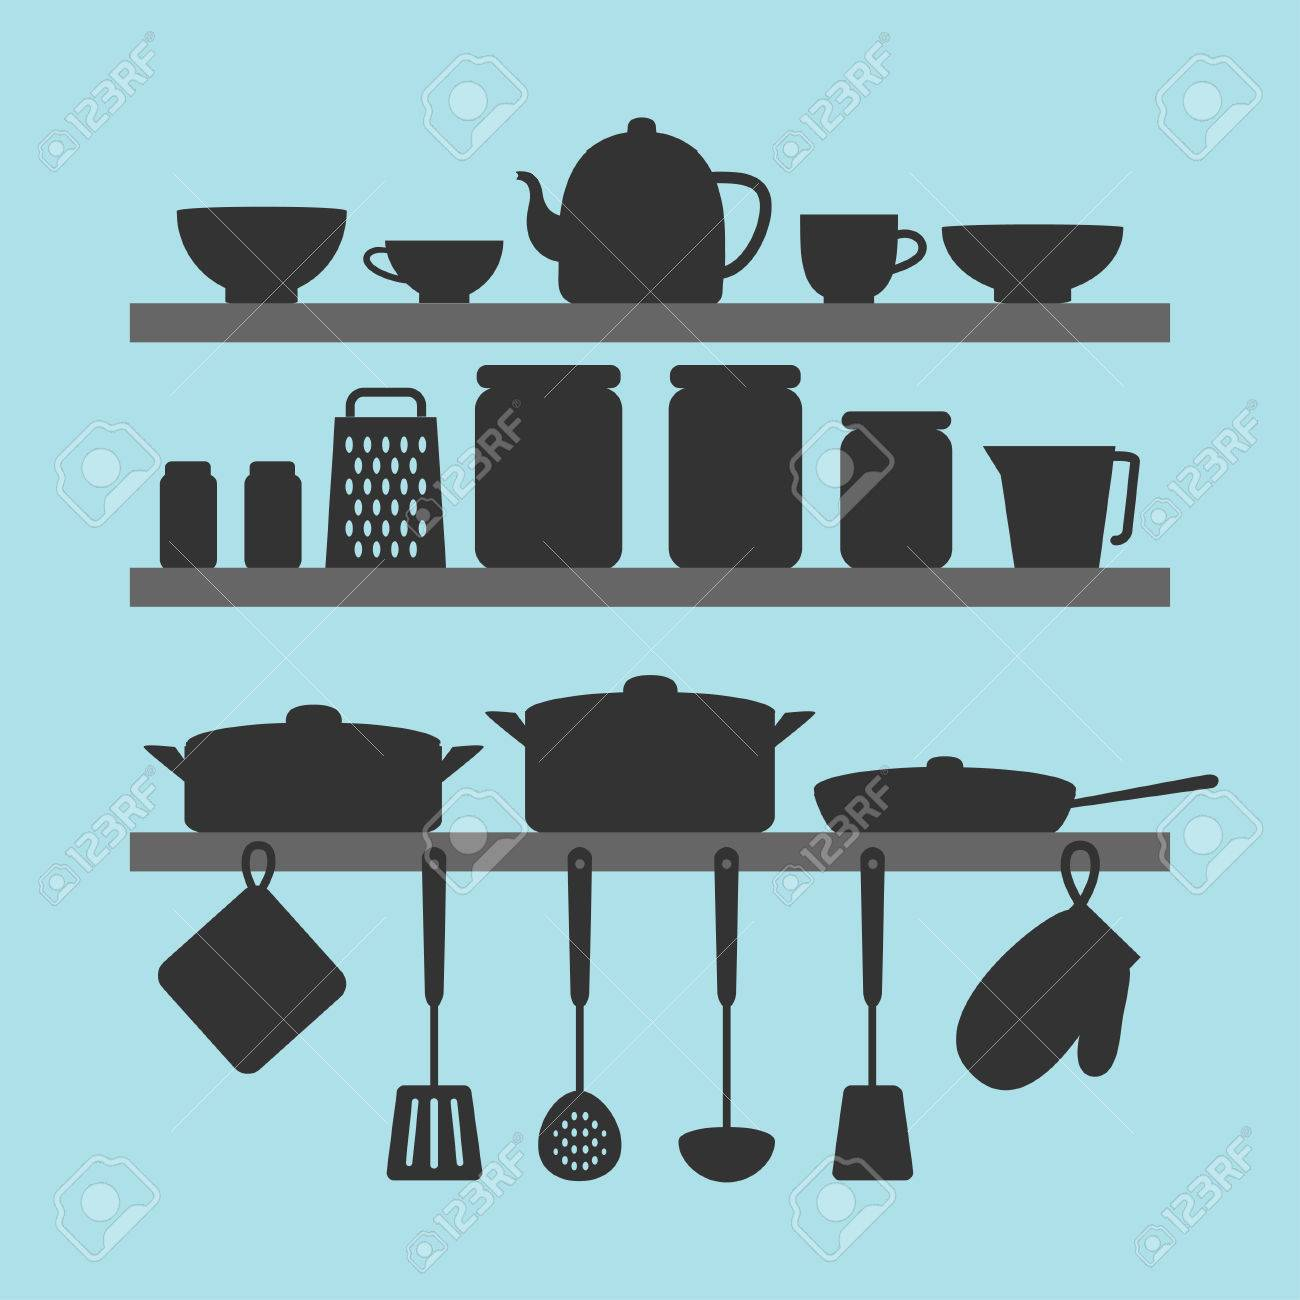 Vector silhouettes of kitchen tools on shelves - 55784528